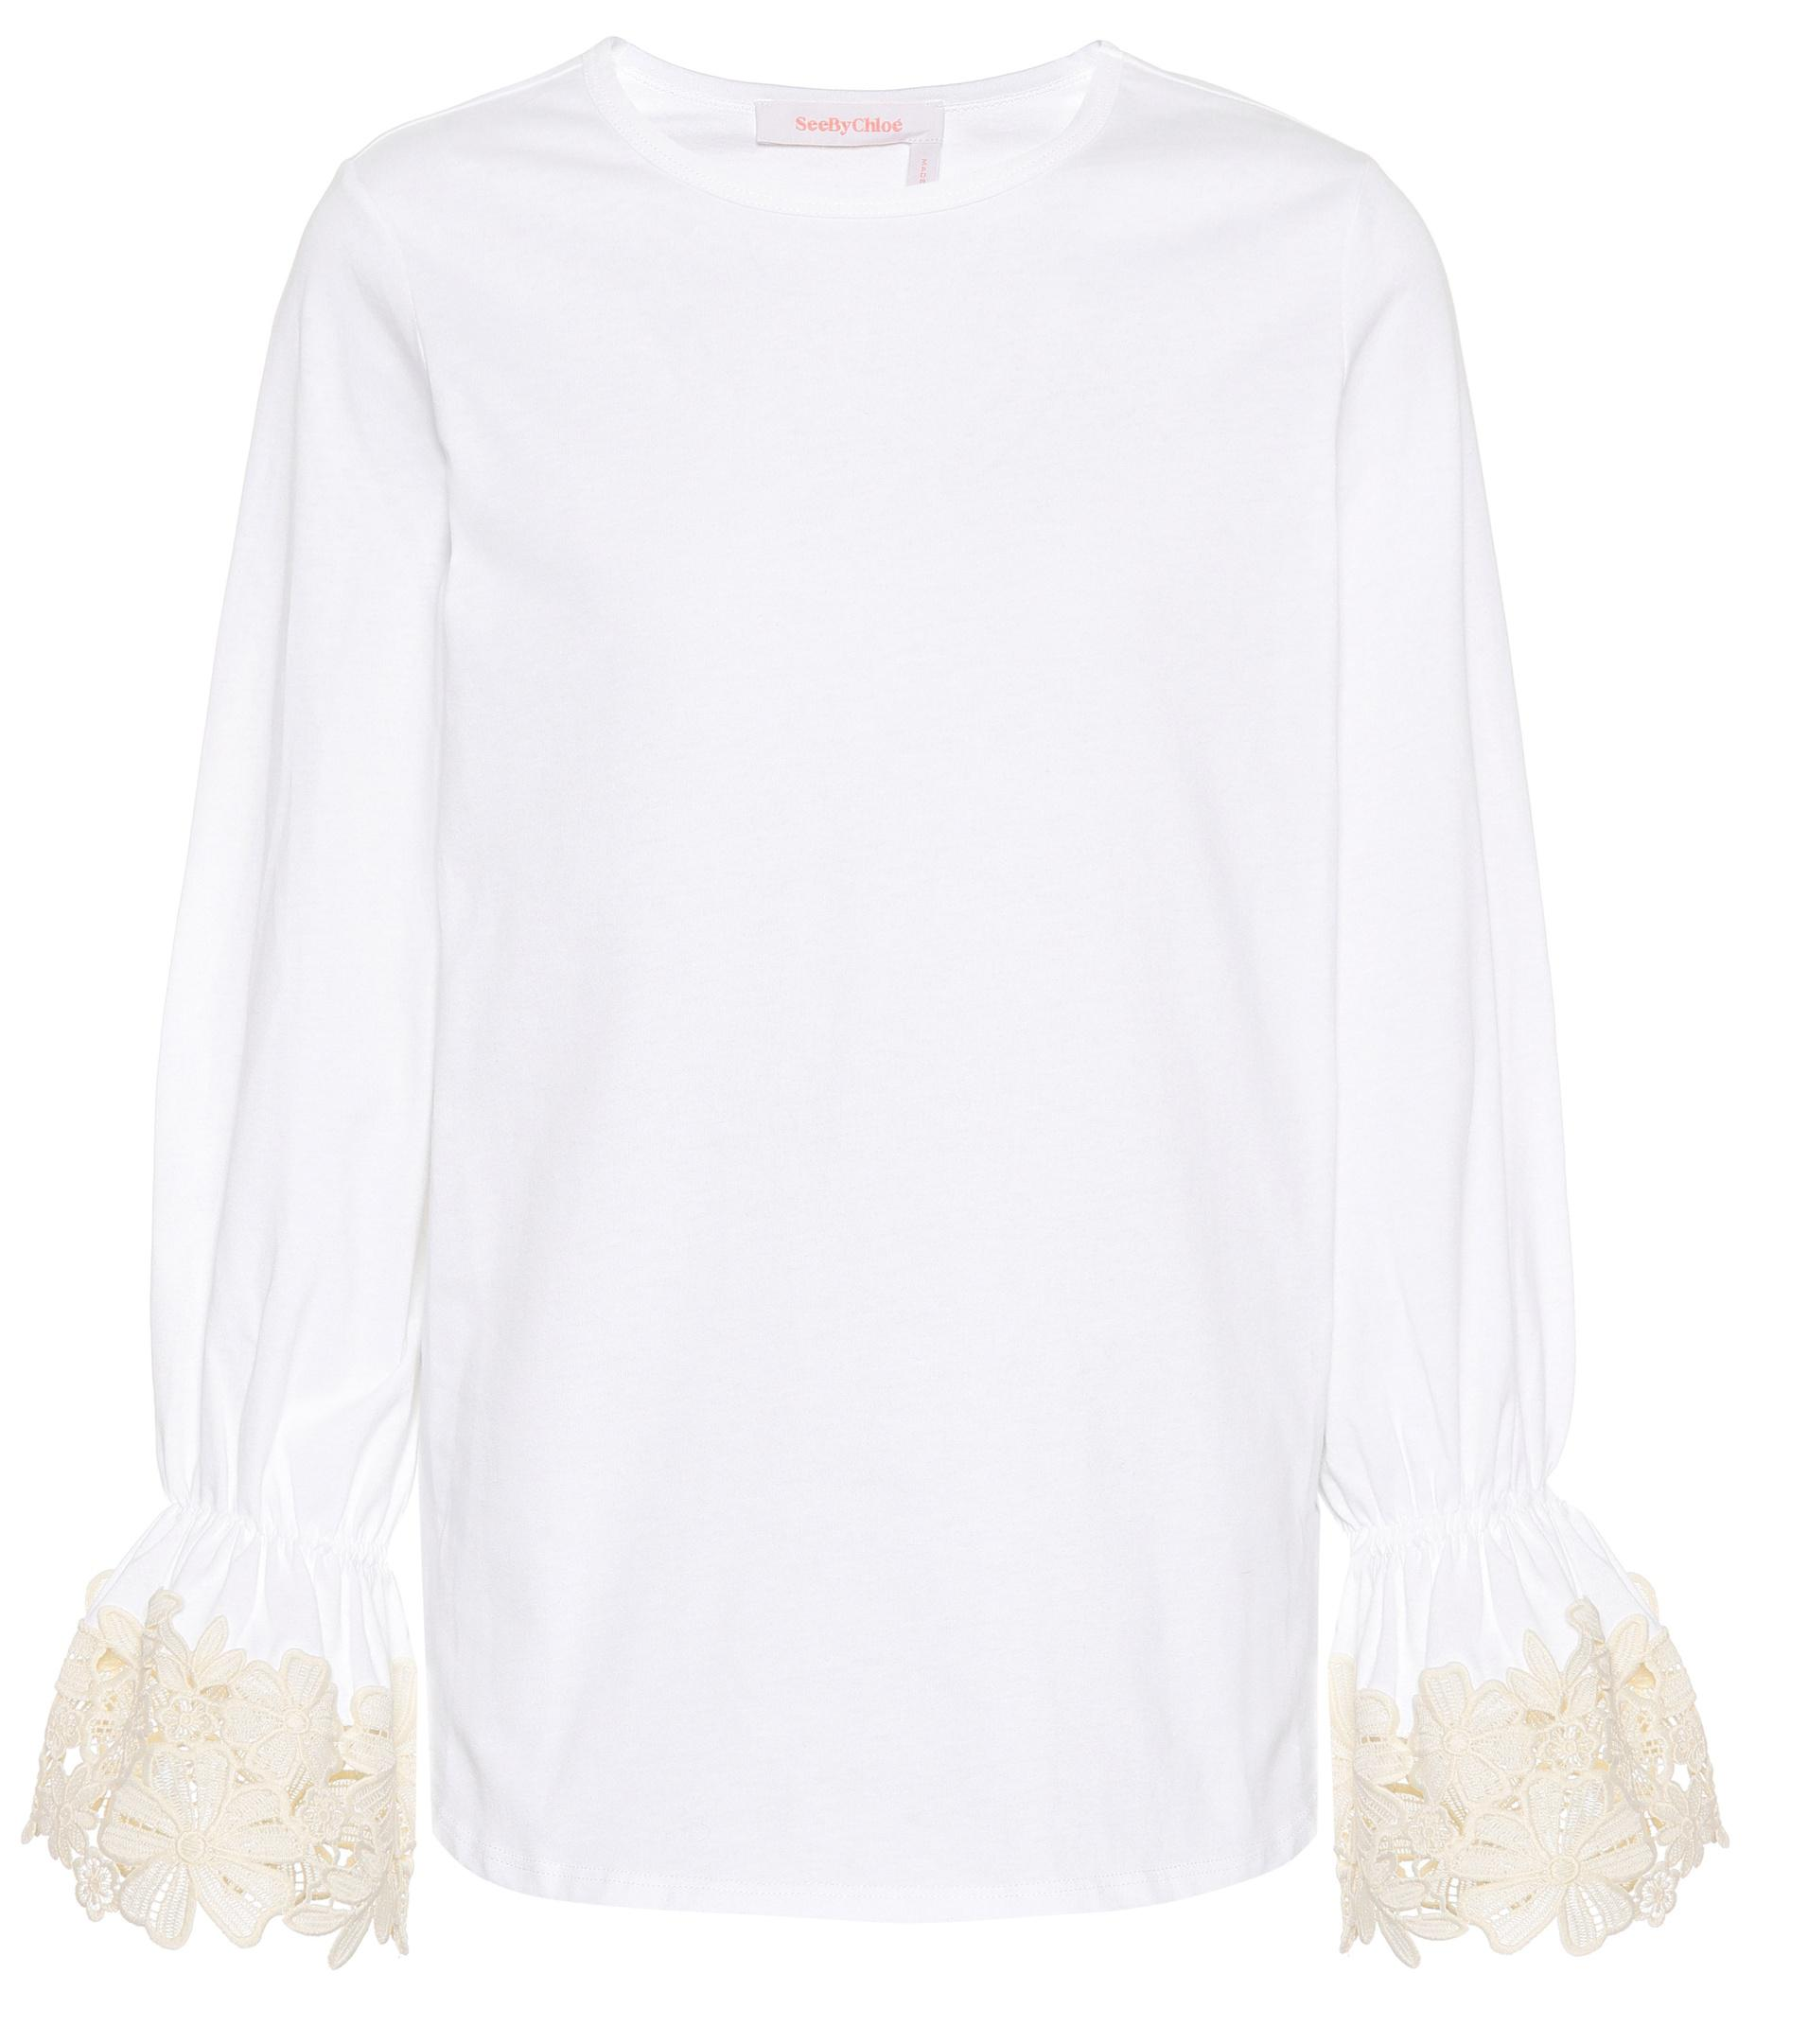 a2c392dce5d Lyst - See By Chloé Cotton Top in White